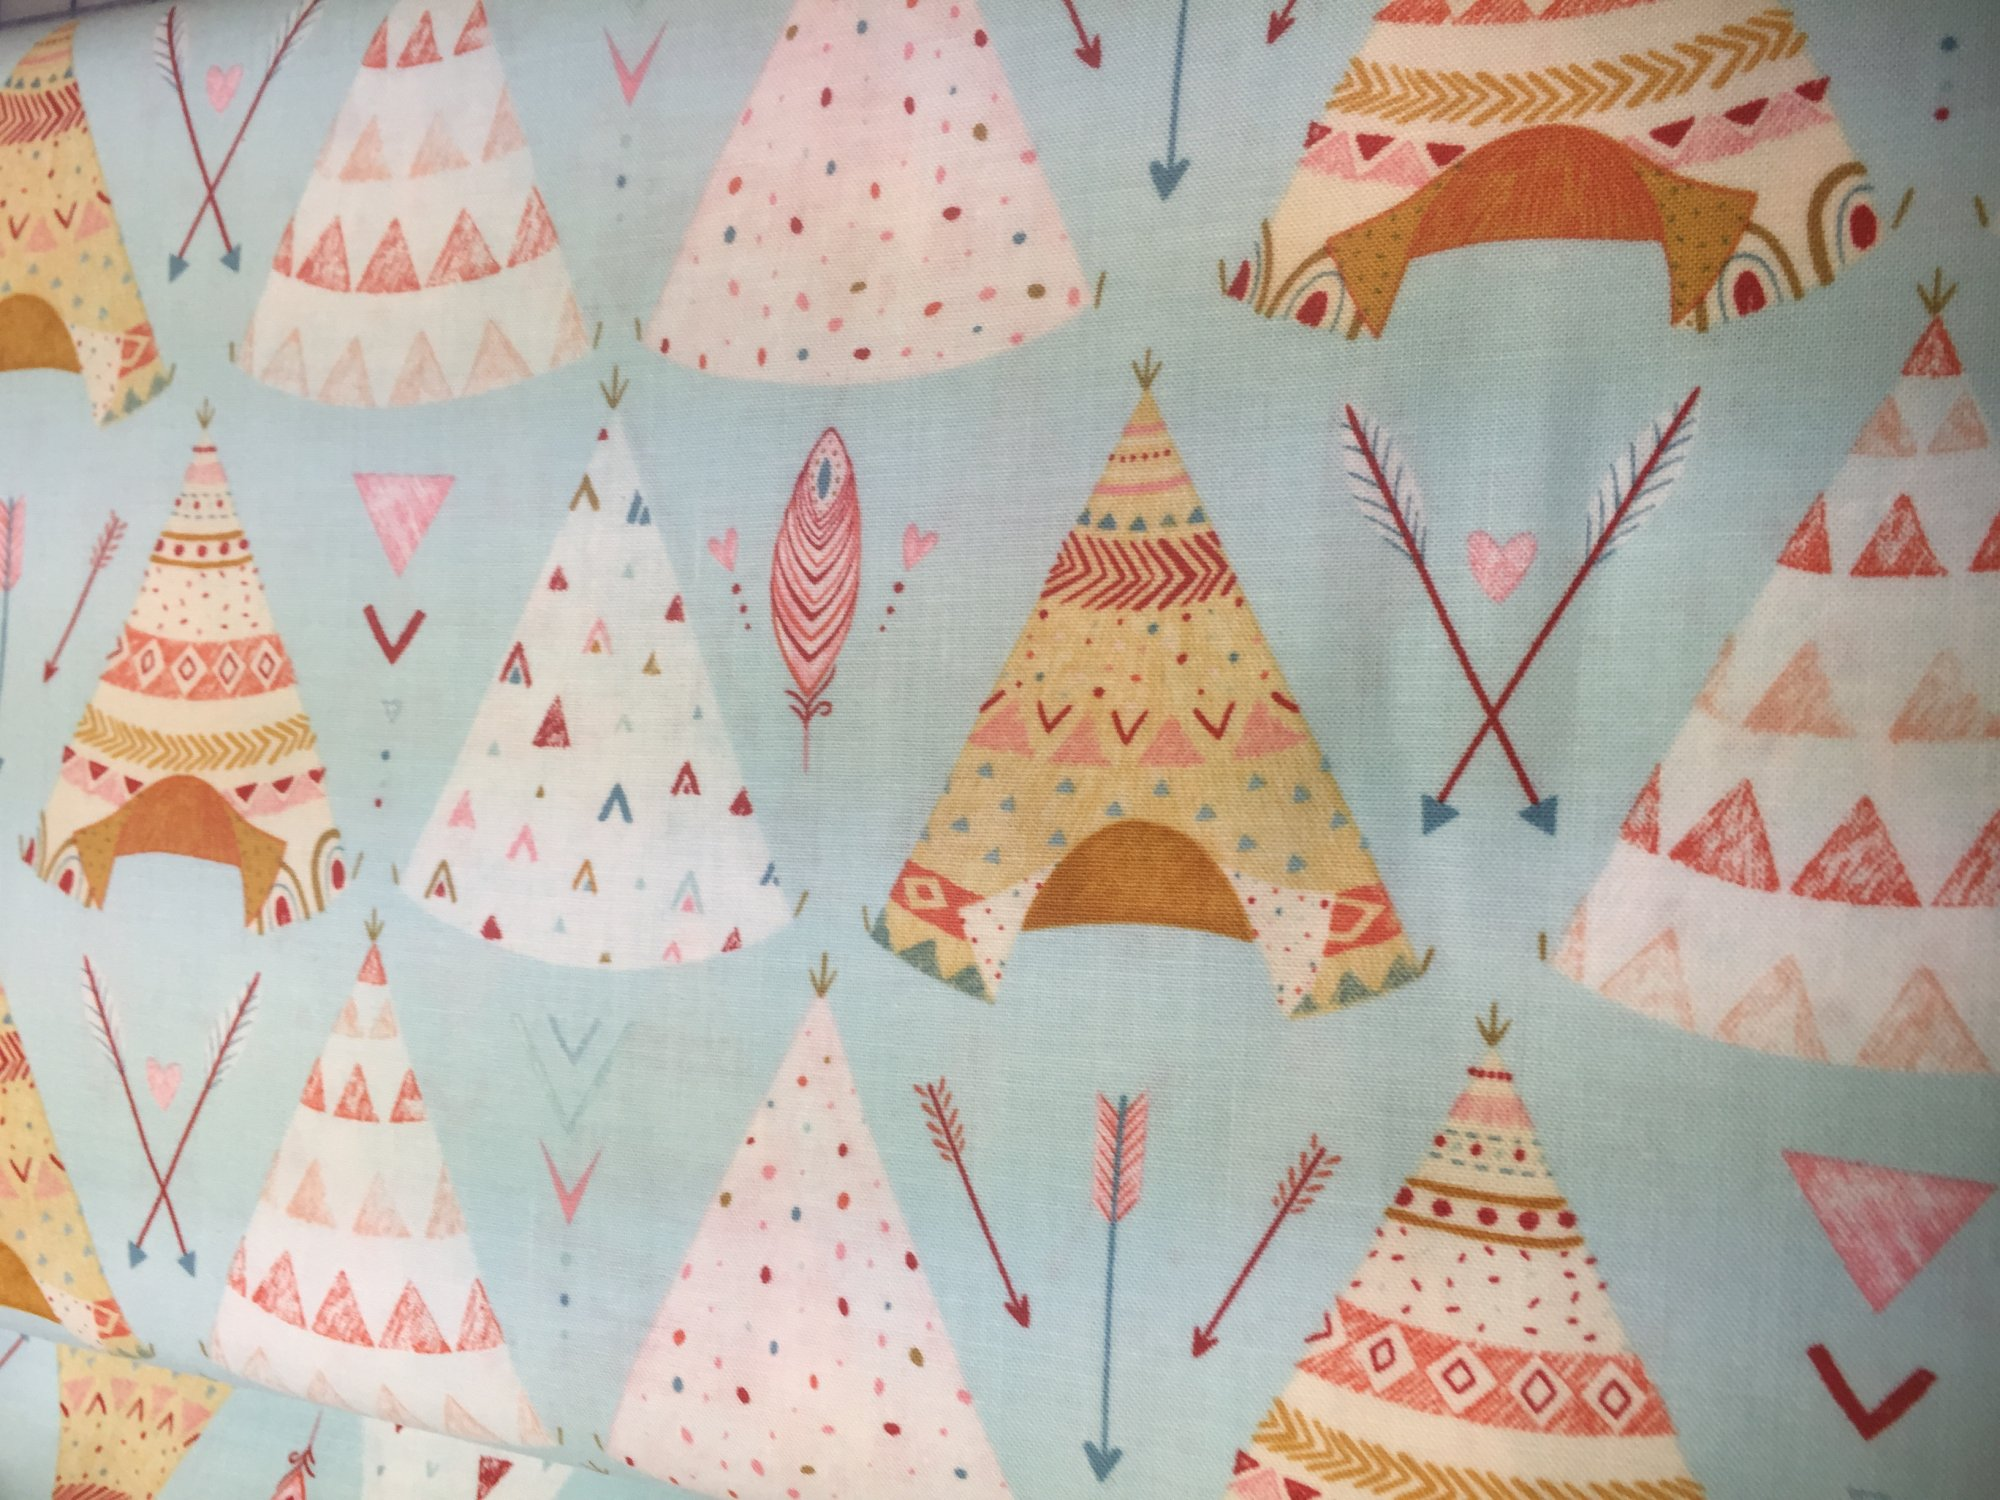 Dream Catchers by Lucie Crovatto - Blue background with teepees